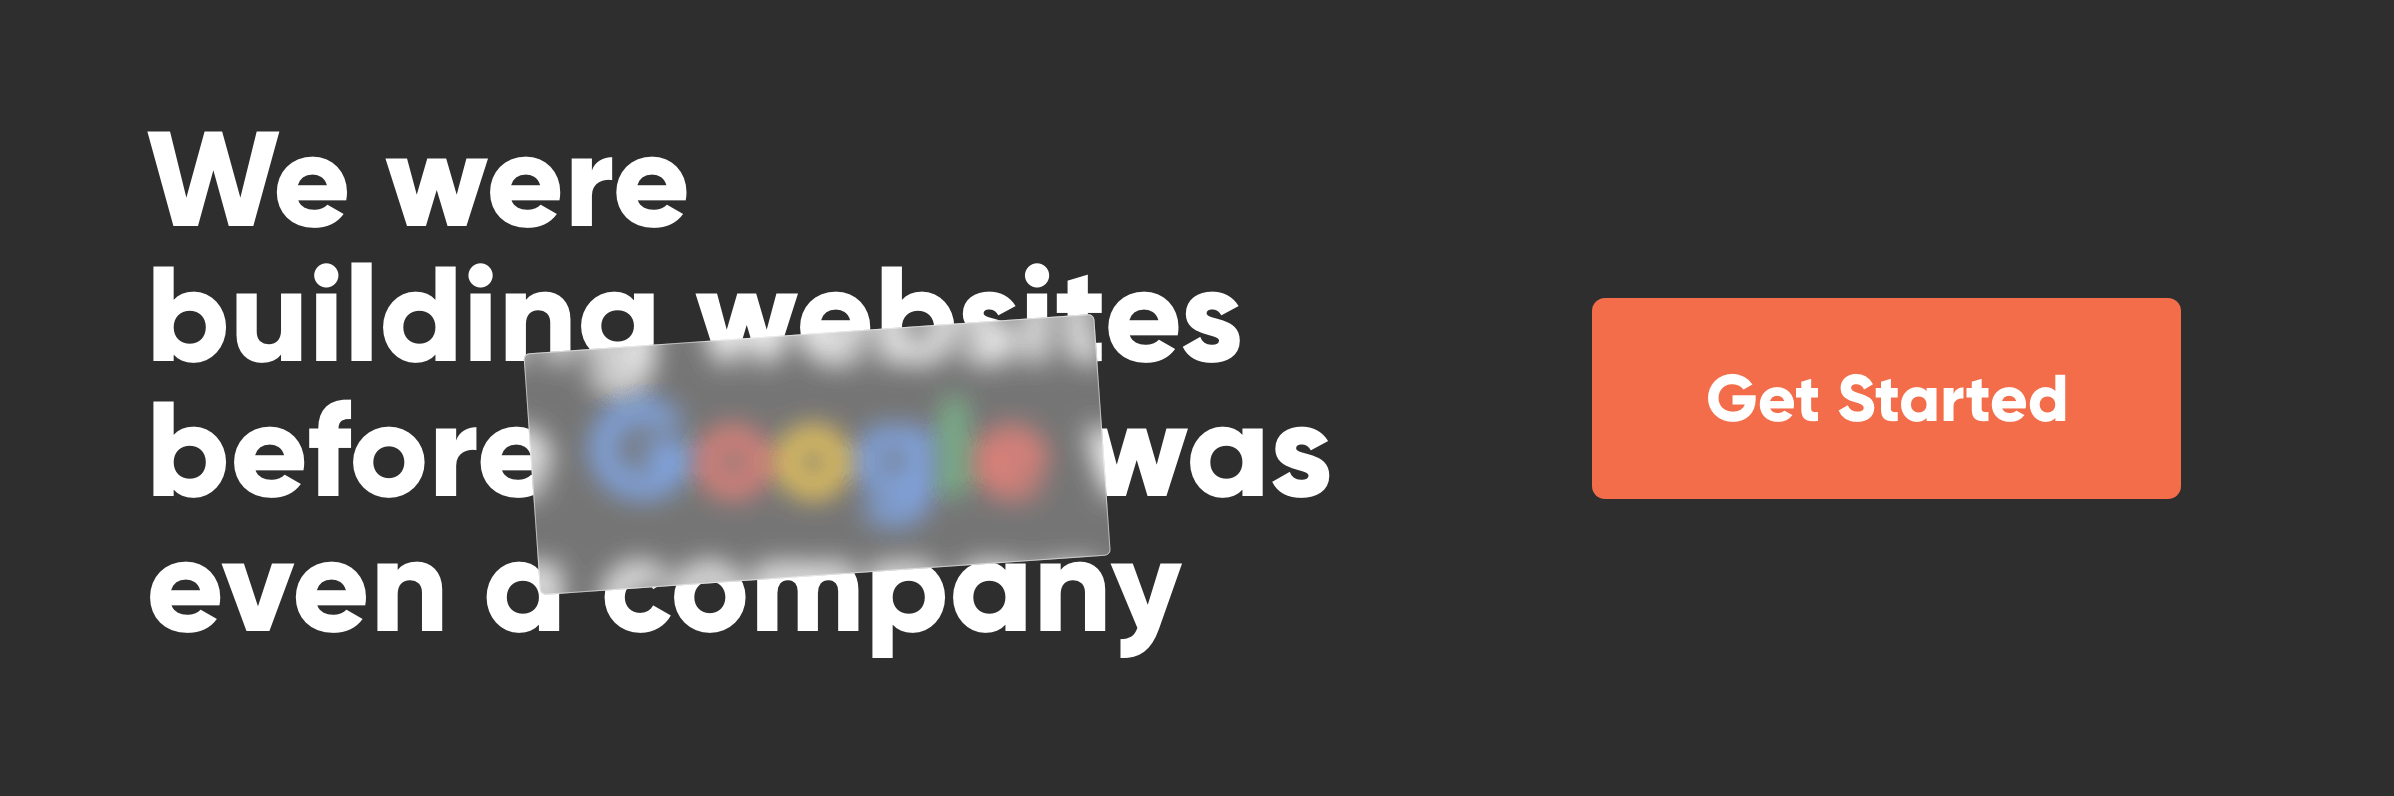 We were building websites before Google was even a company